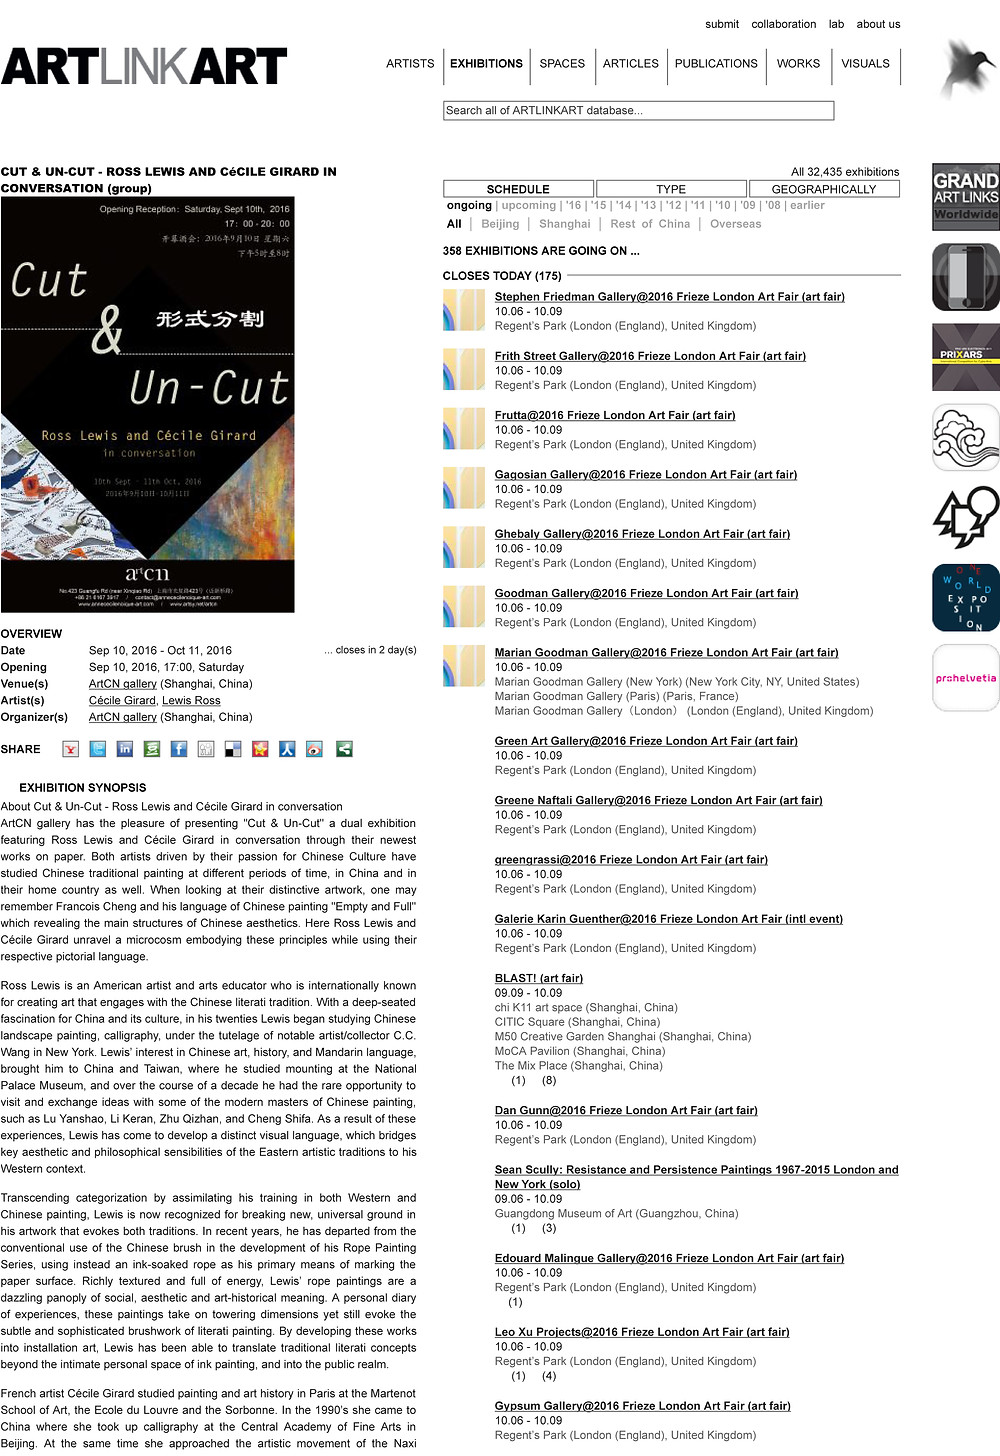 Art Link Art is an online database project for Chinese contemporary art